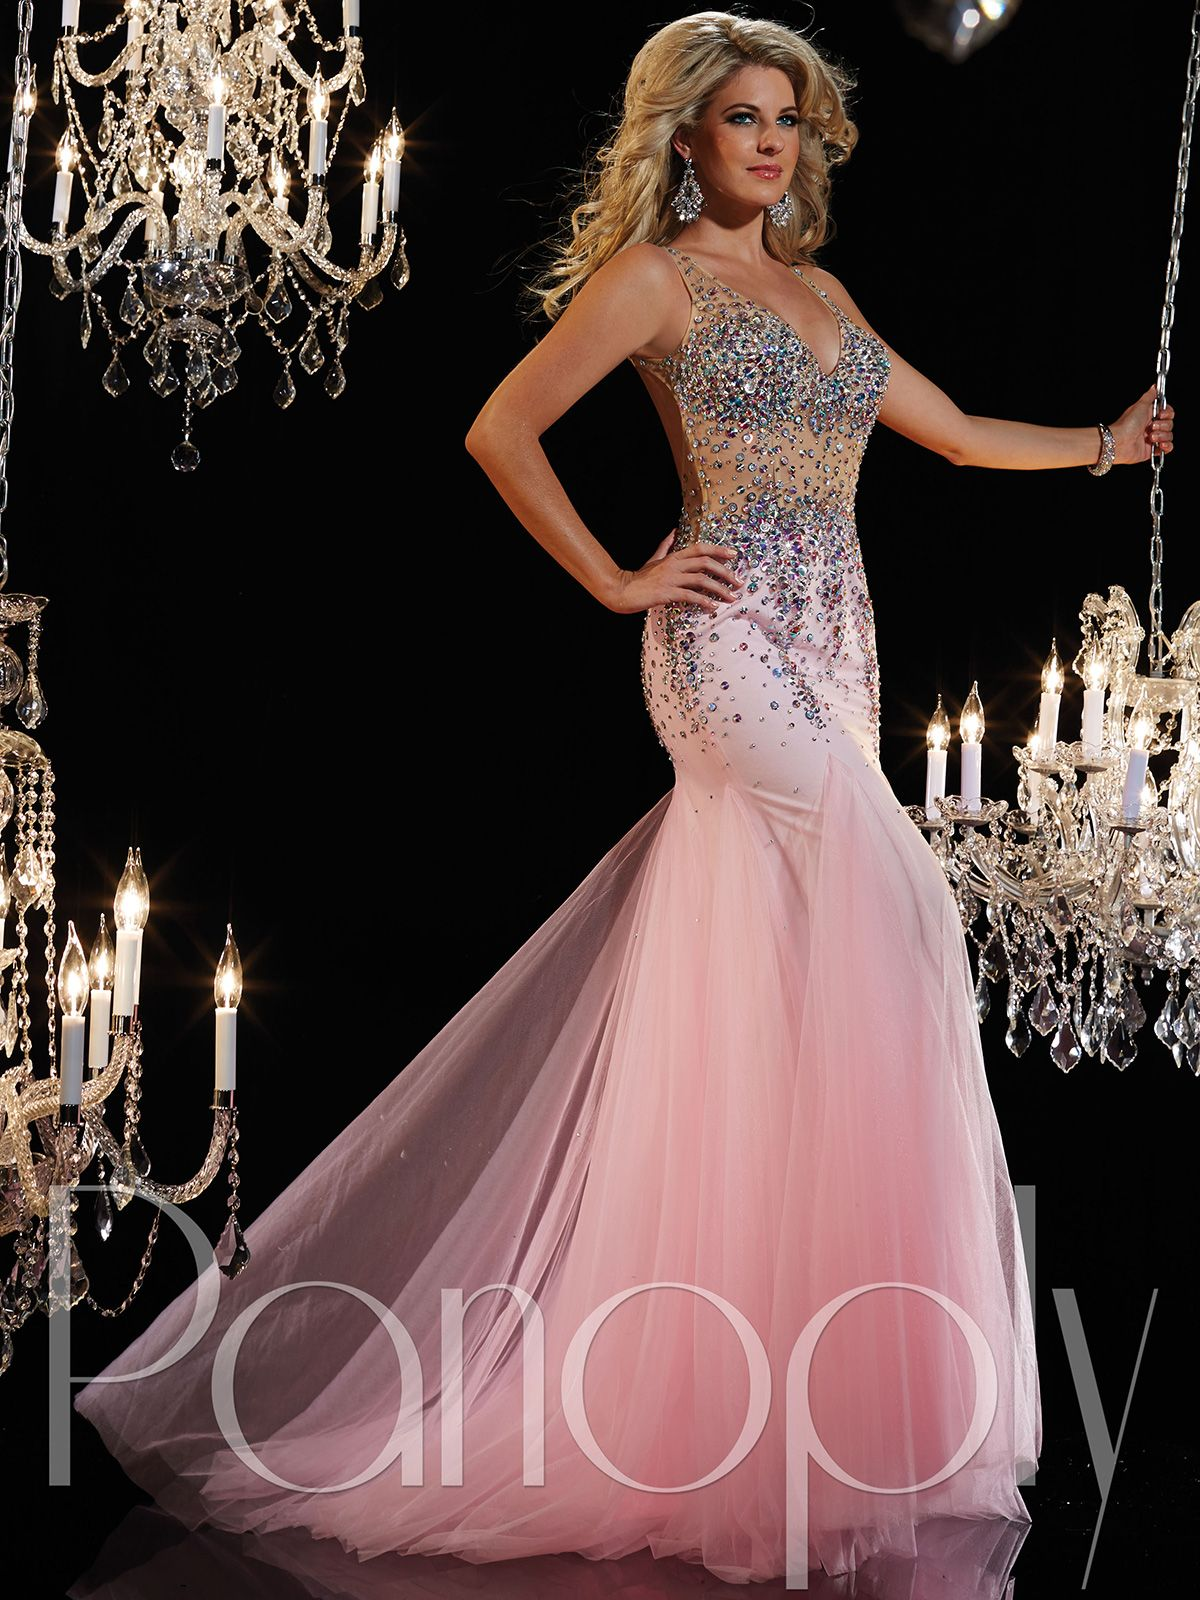 Glide through the stage in this ravishing sleeveless pageant dress ...